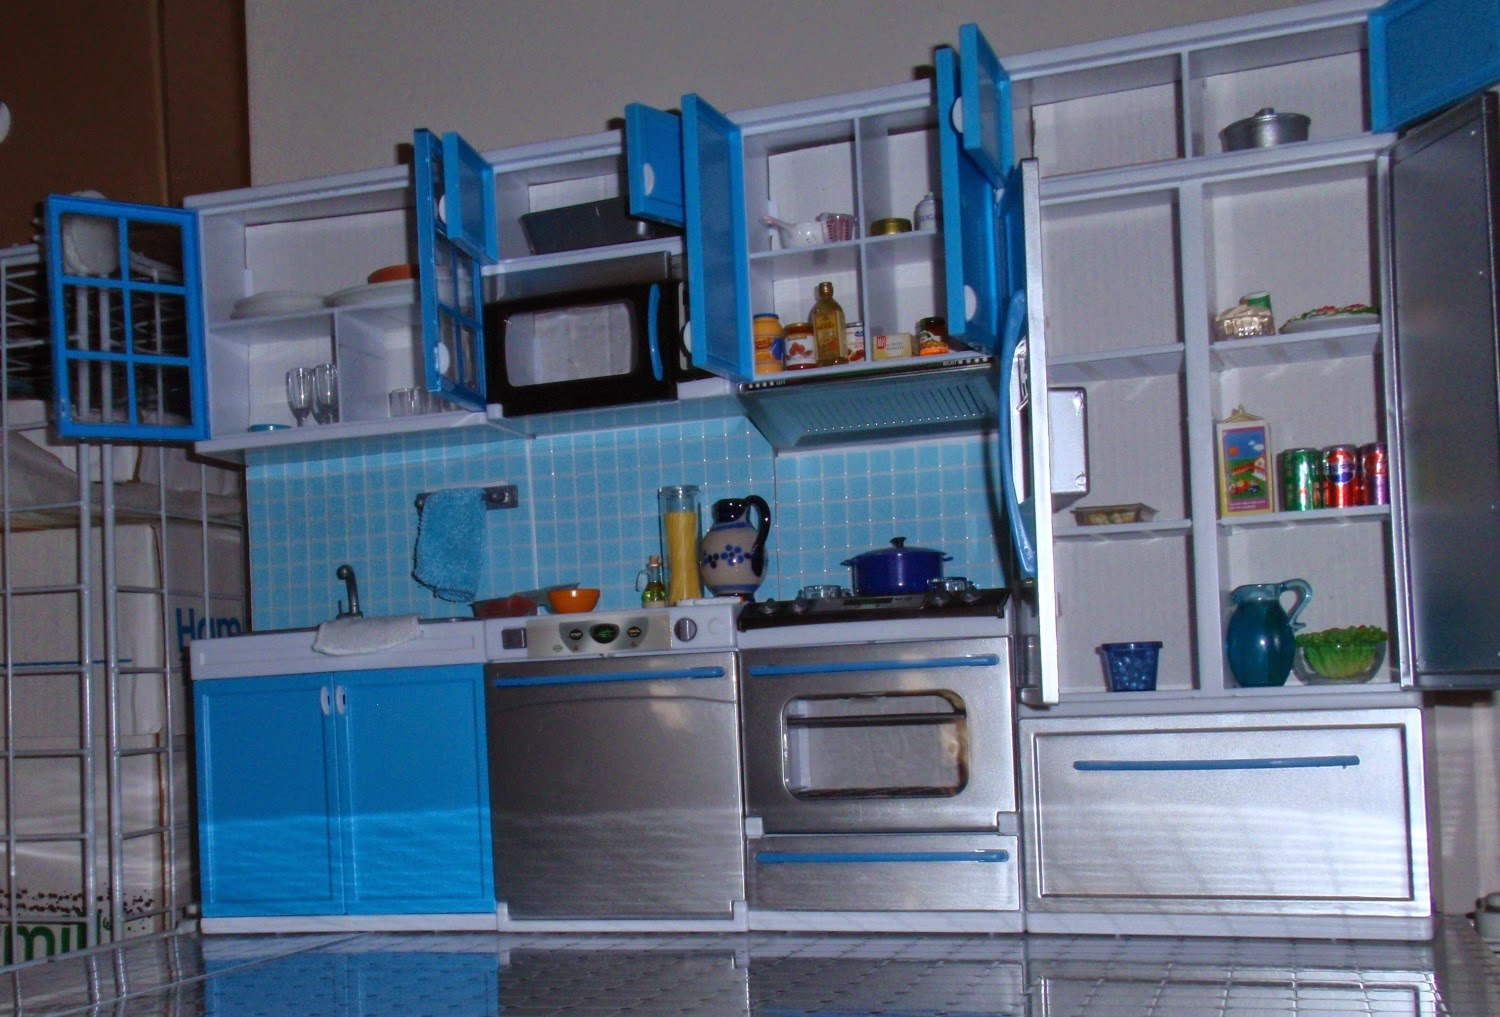 My little doll corner modern kitchen out of the box for Plastic kitchen flooring